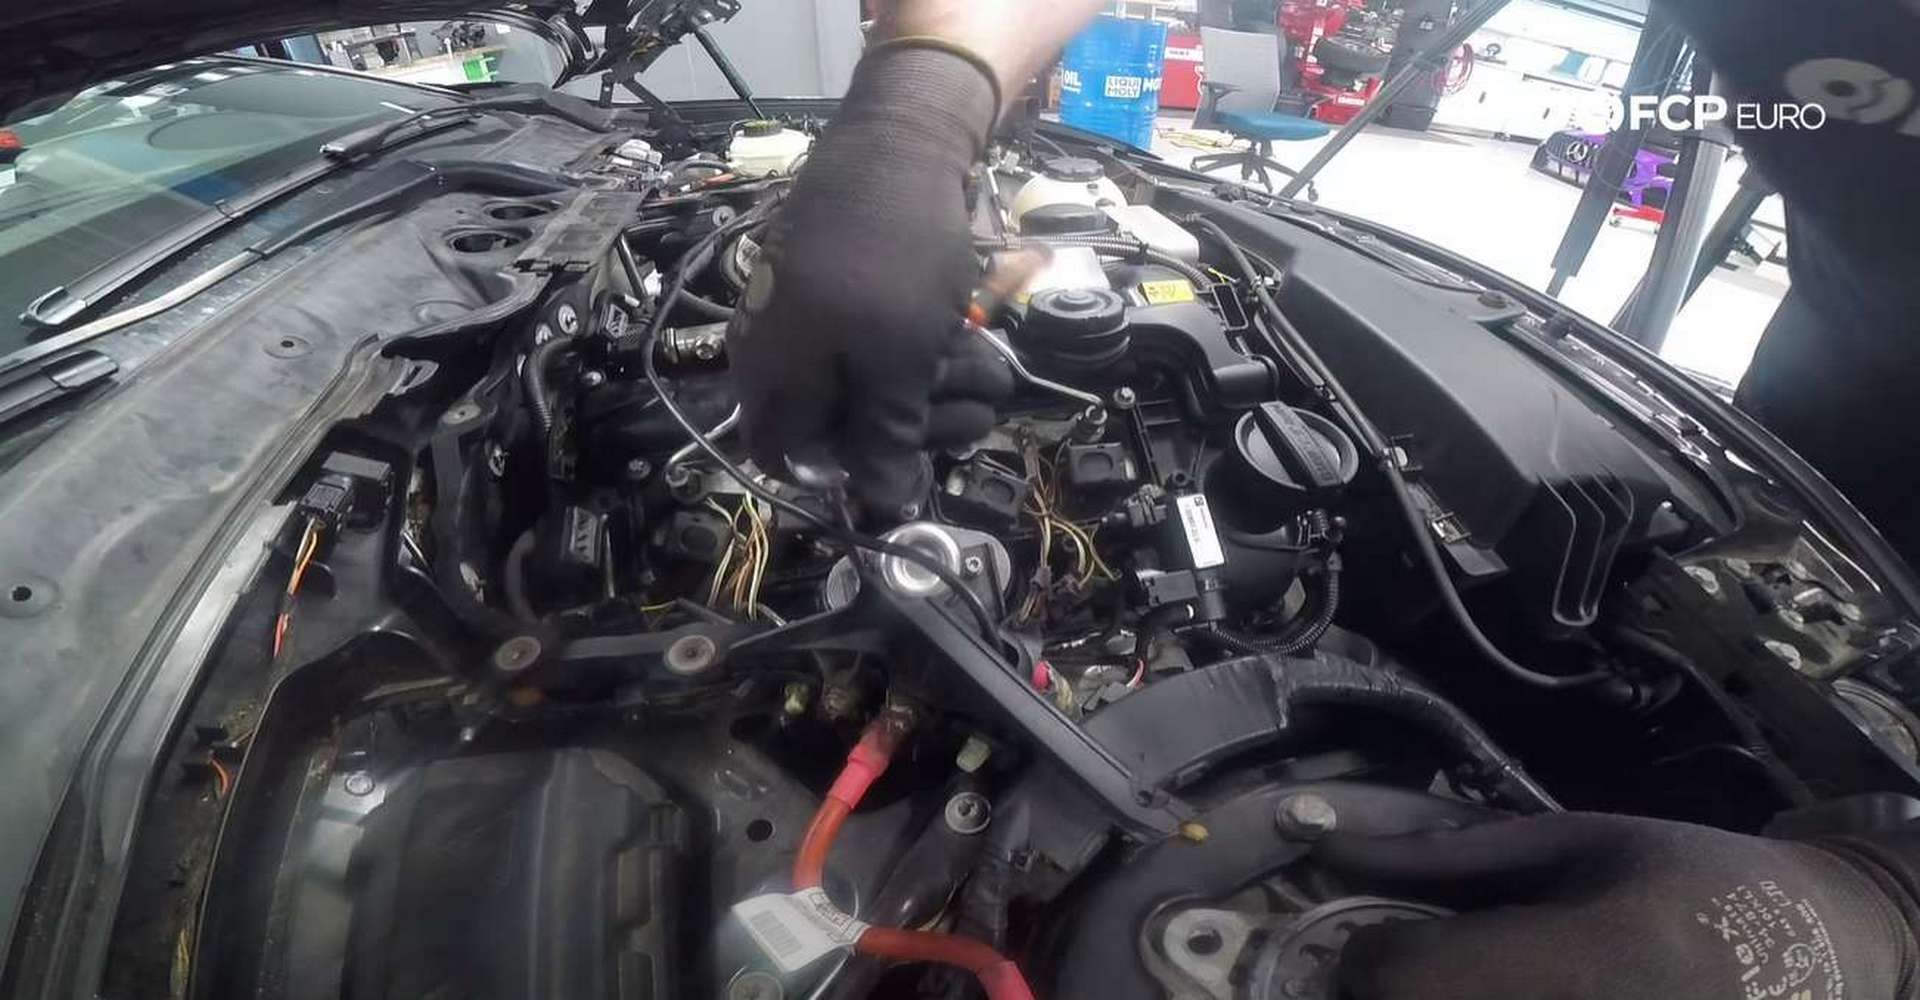 DIY BMW F30 High-Pressure Fuel Pump Replacement removing the fuel pump